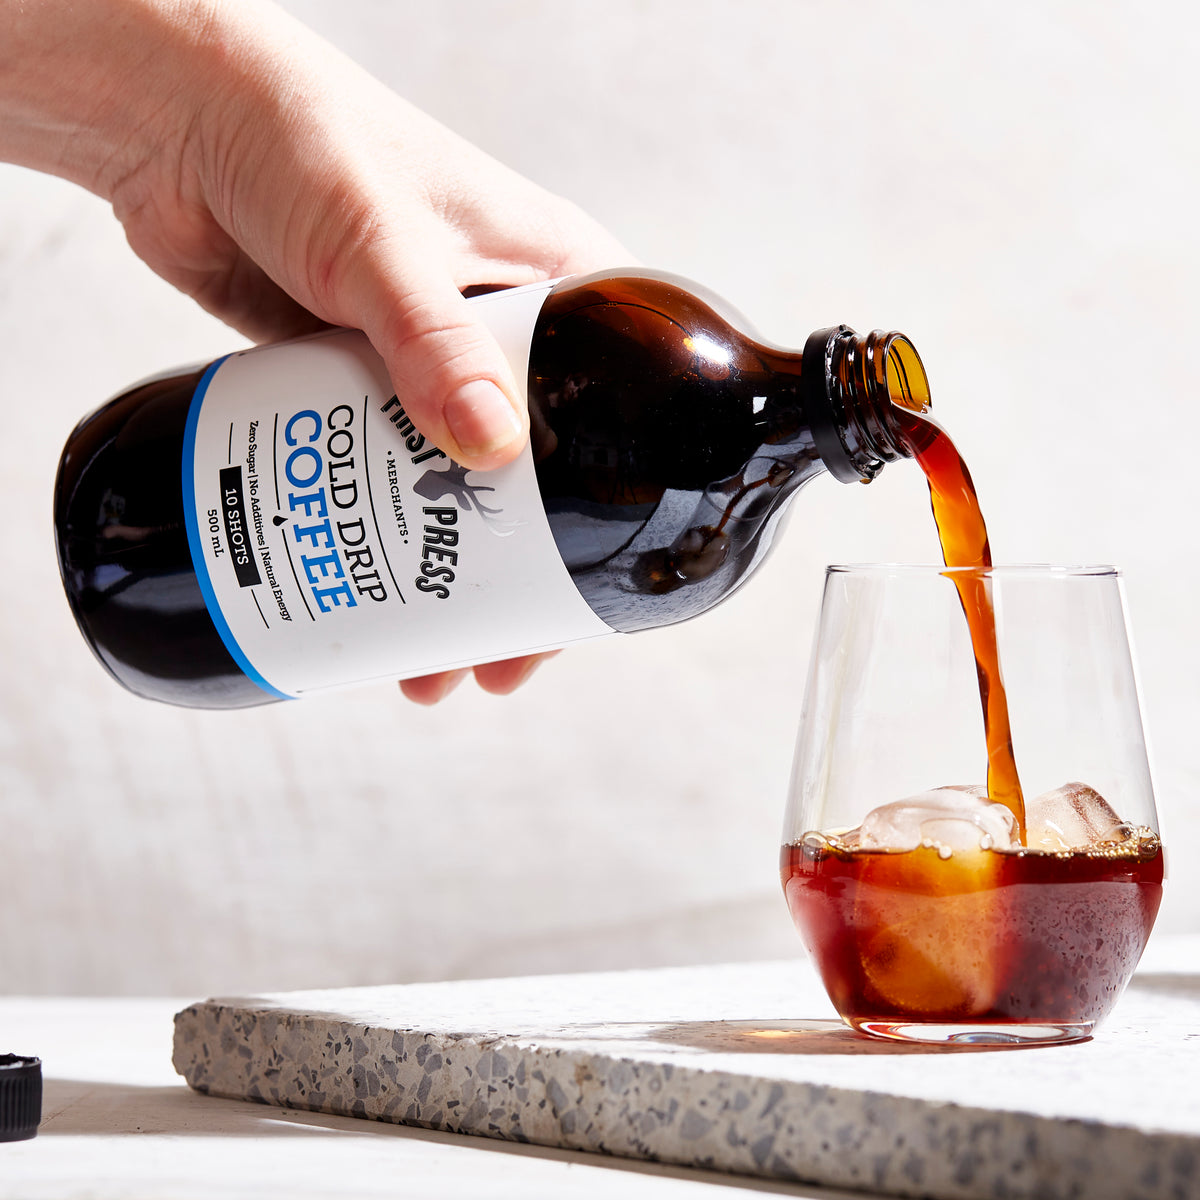 First Press Coffee - Big Boy 500ml Original Cold Drip Coffee - A bottle pouring into Glass over ice